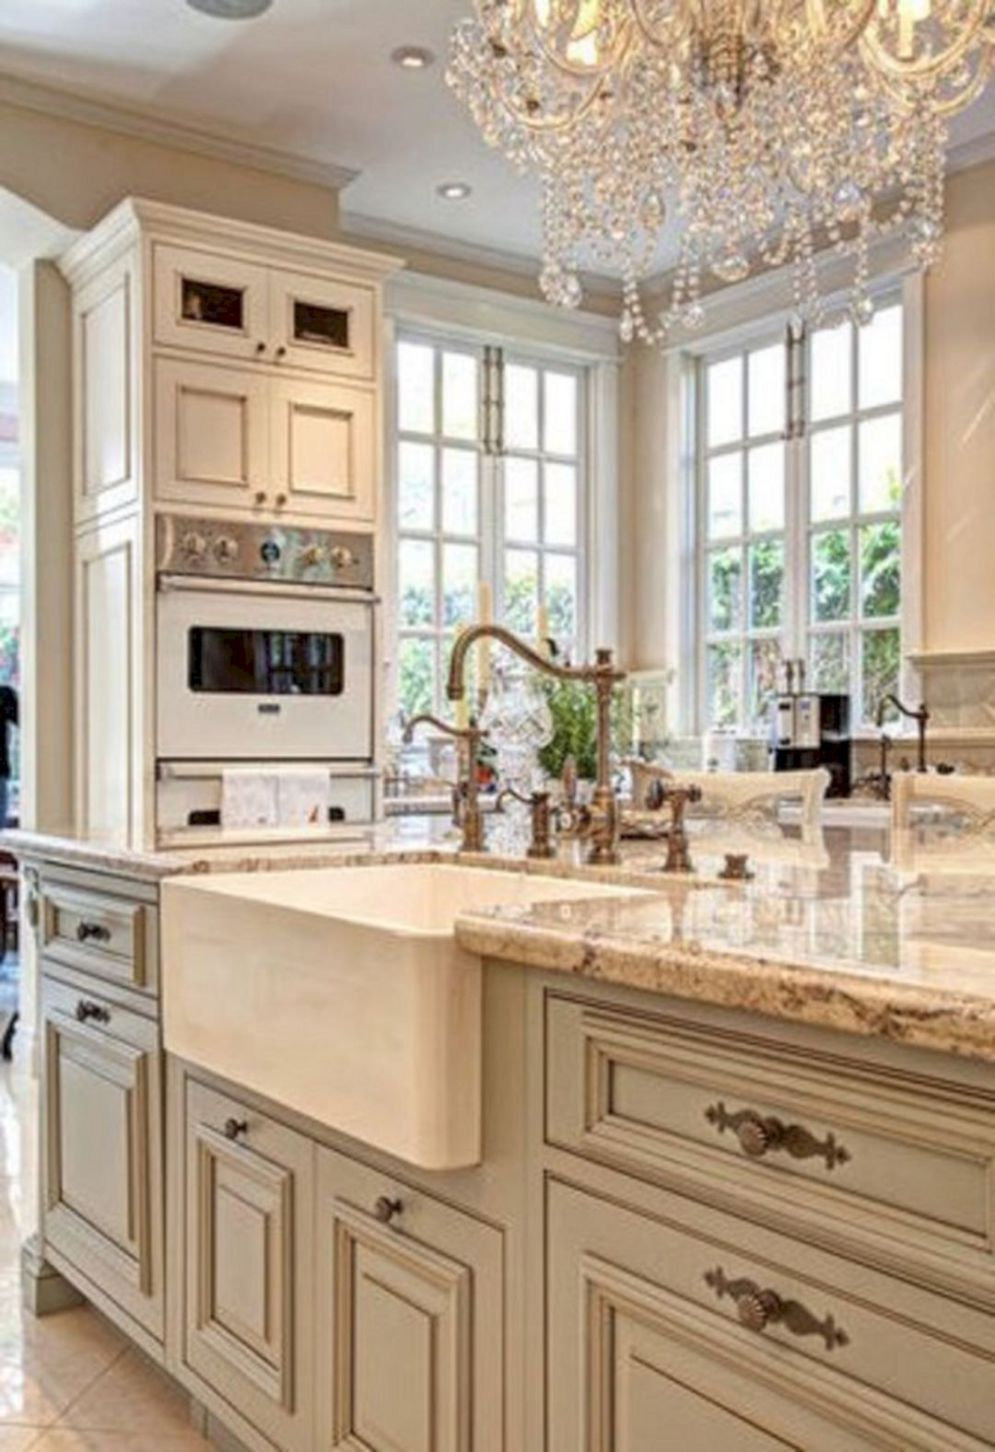 Top 5 Elegant French Country Home Architecture Ideas Freshouz Com Country Kitchen Designs Elegant Kitchens French Country Kitchens